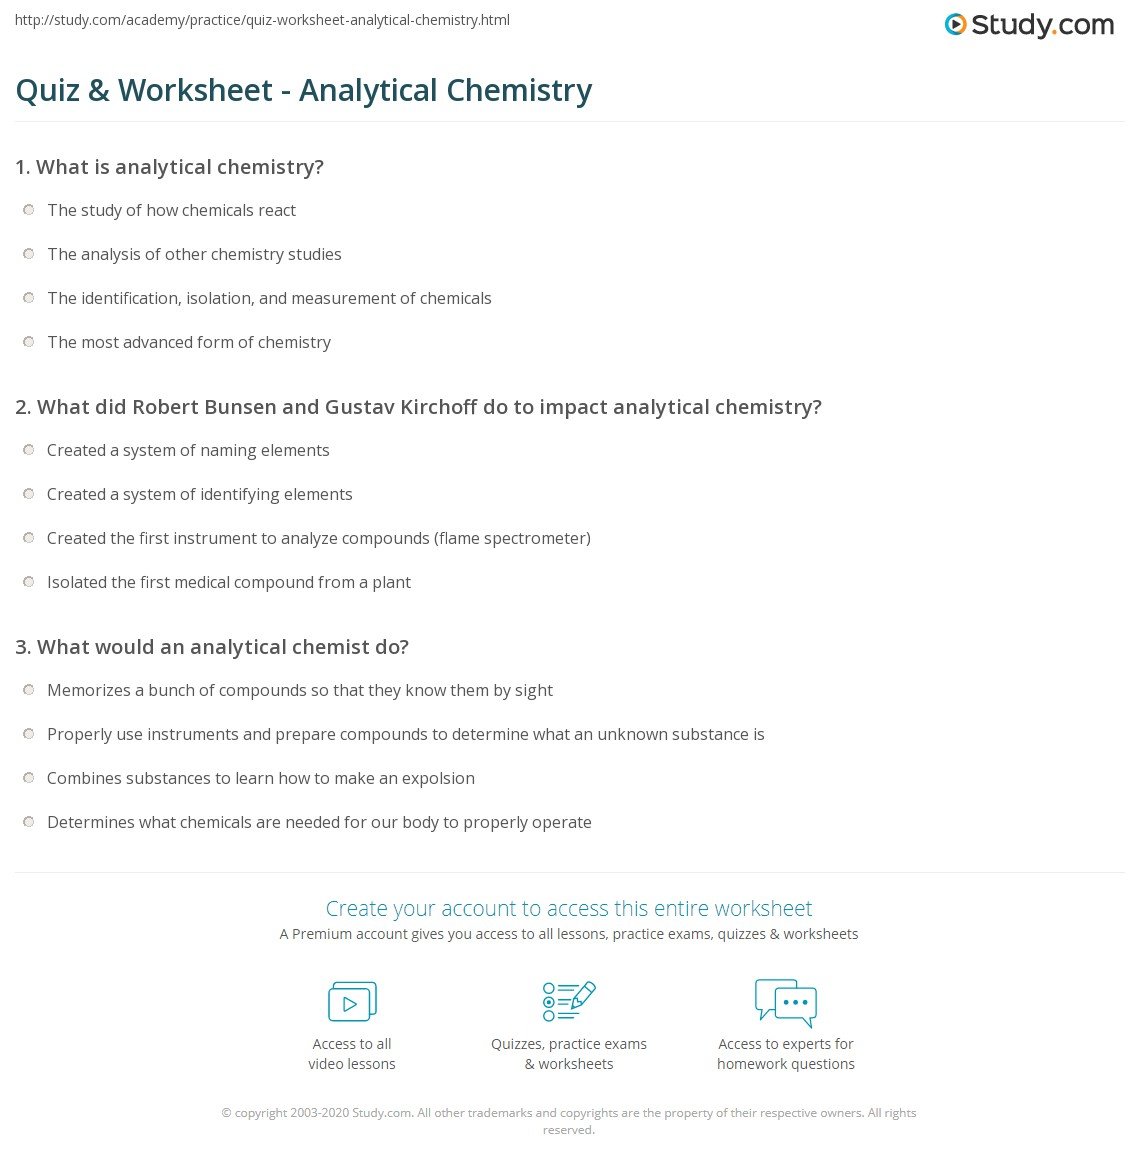 Worksheets Chemistry Review Worksheets quiz worksheet analytical chemistry study com print what is definition impact worksheet